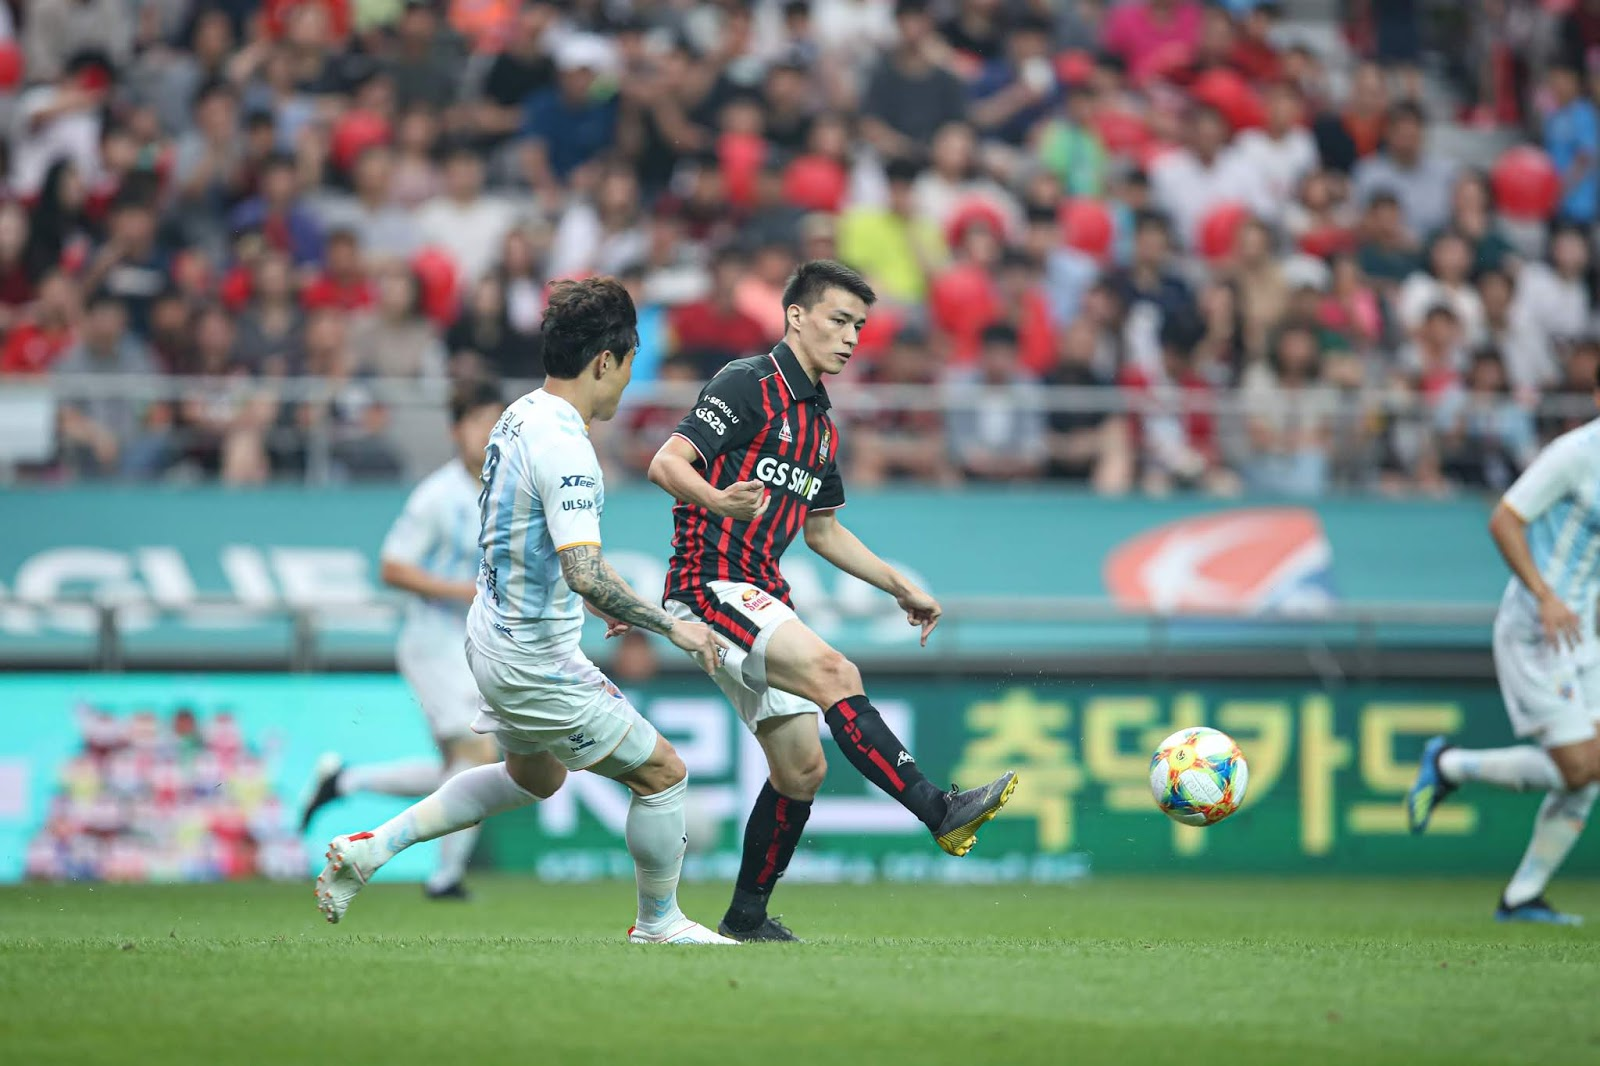 Preview: FC Seoul vs Ulsan Hyundai K League 1 Final Round A Round 36